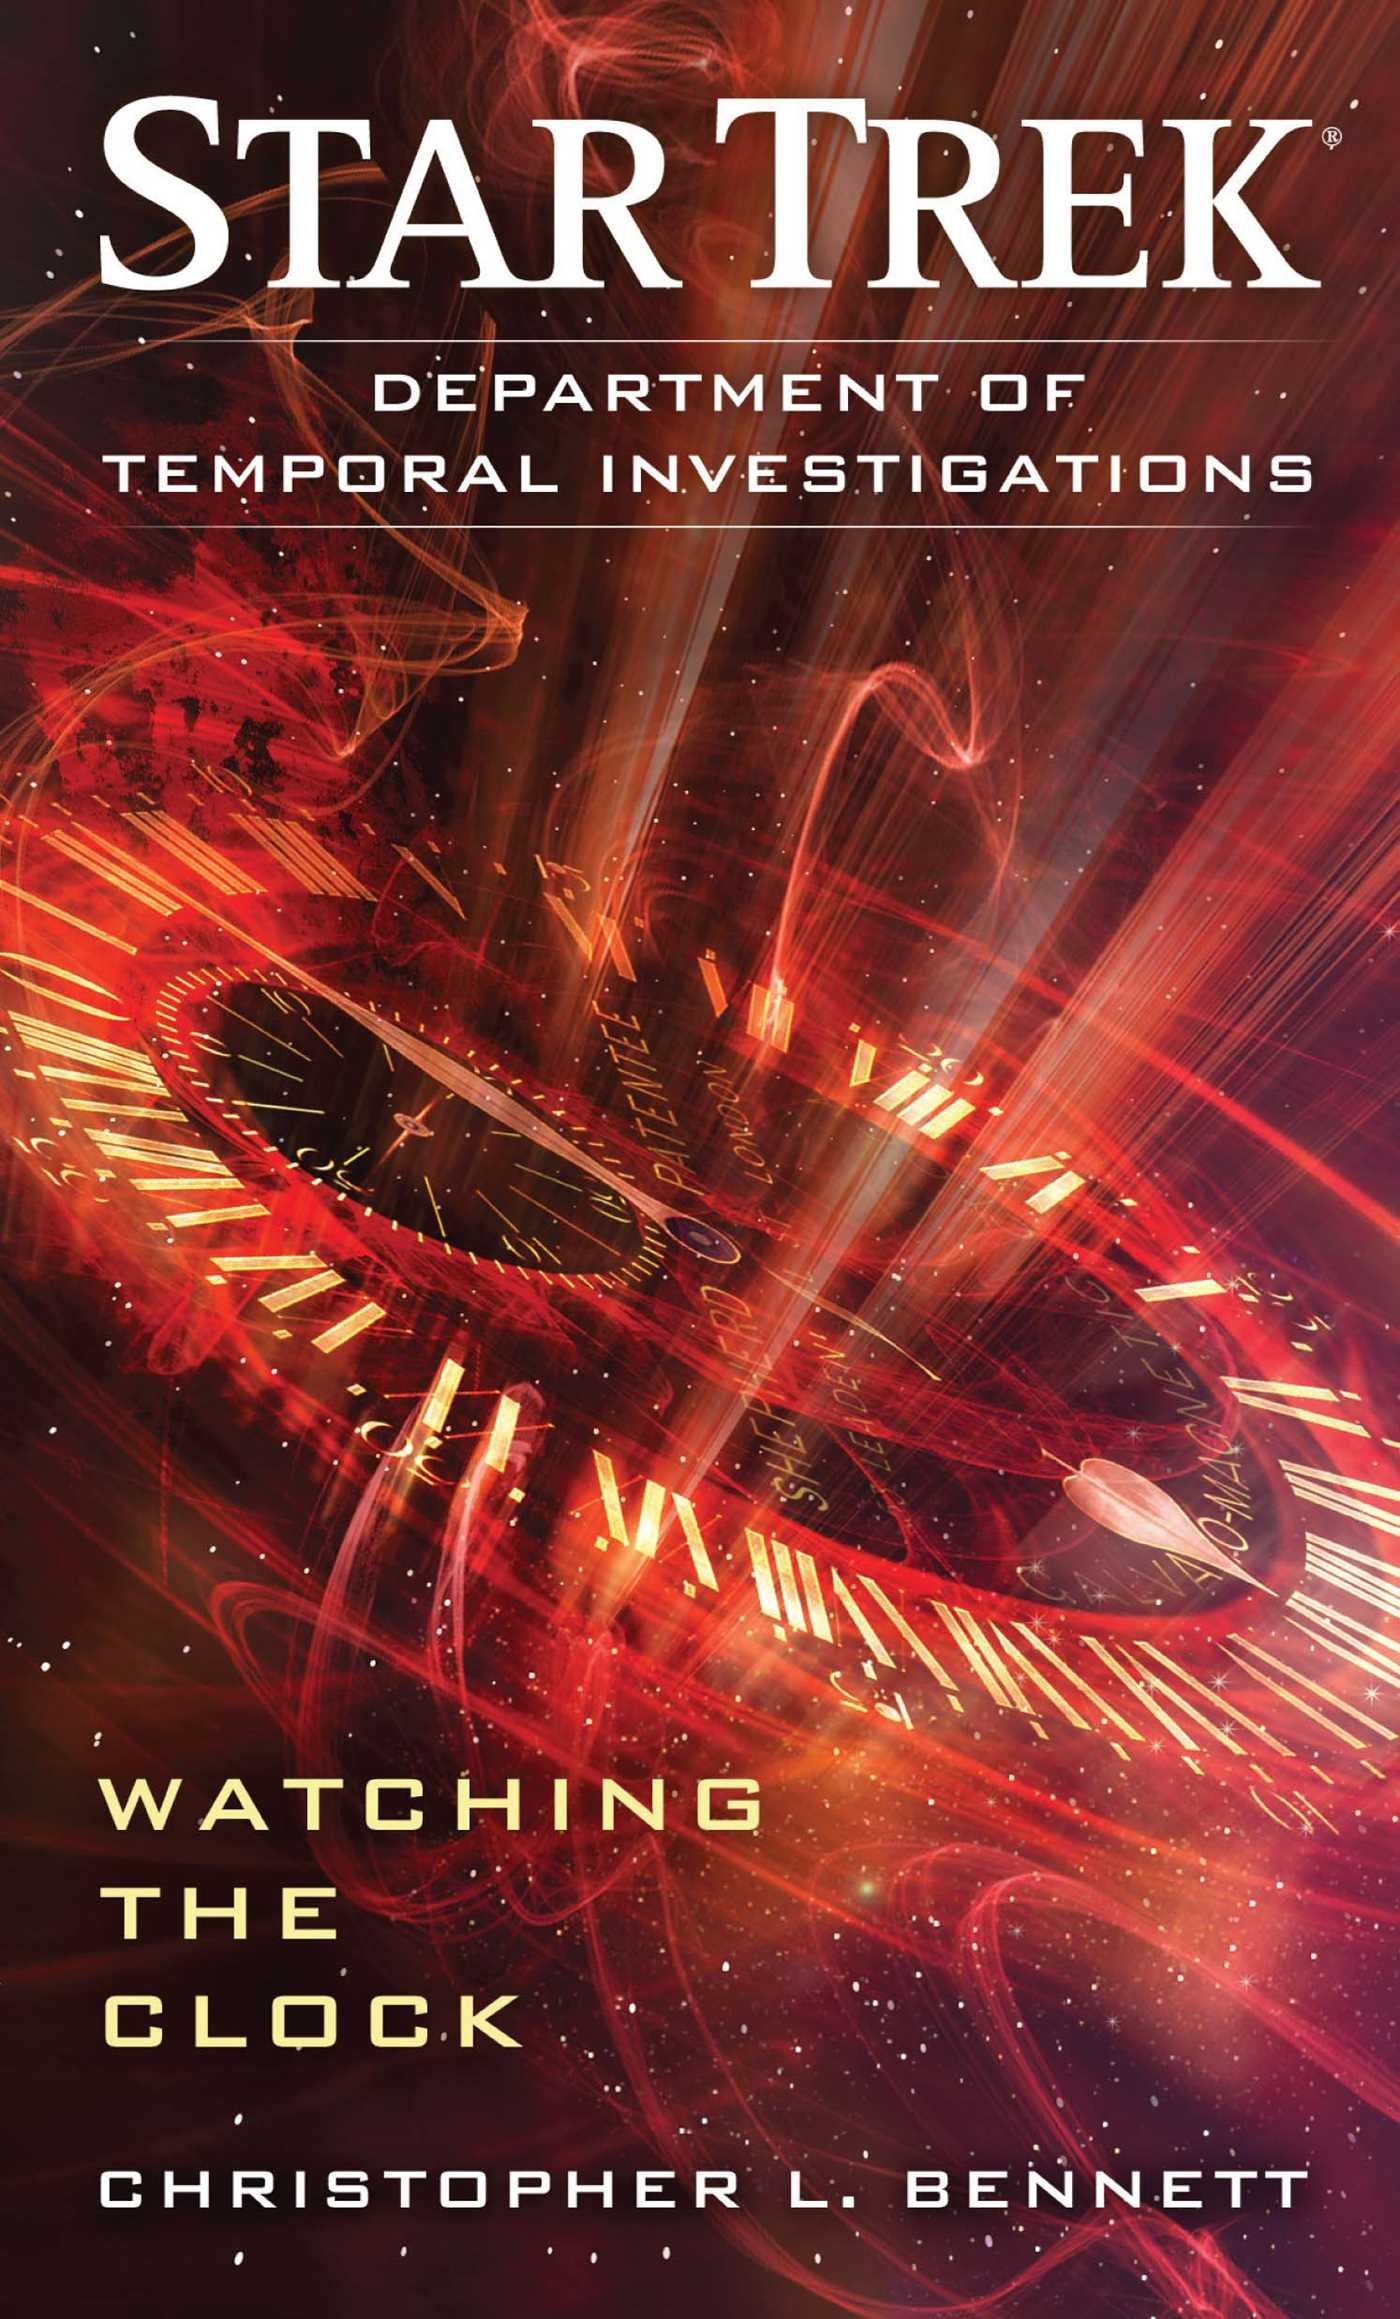 Star trek department of temporal investigations watching the clock 9781451606294 hr